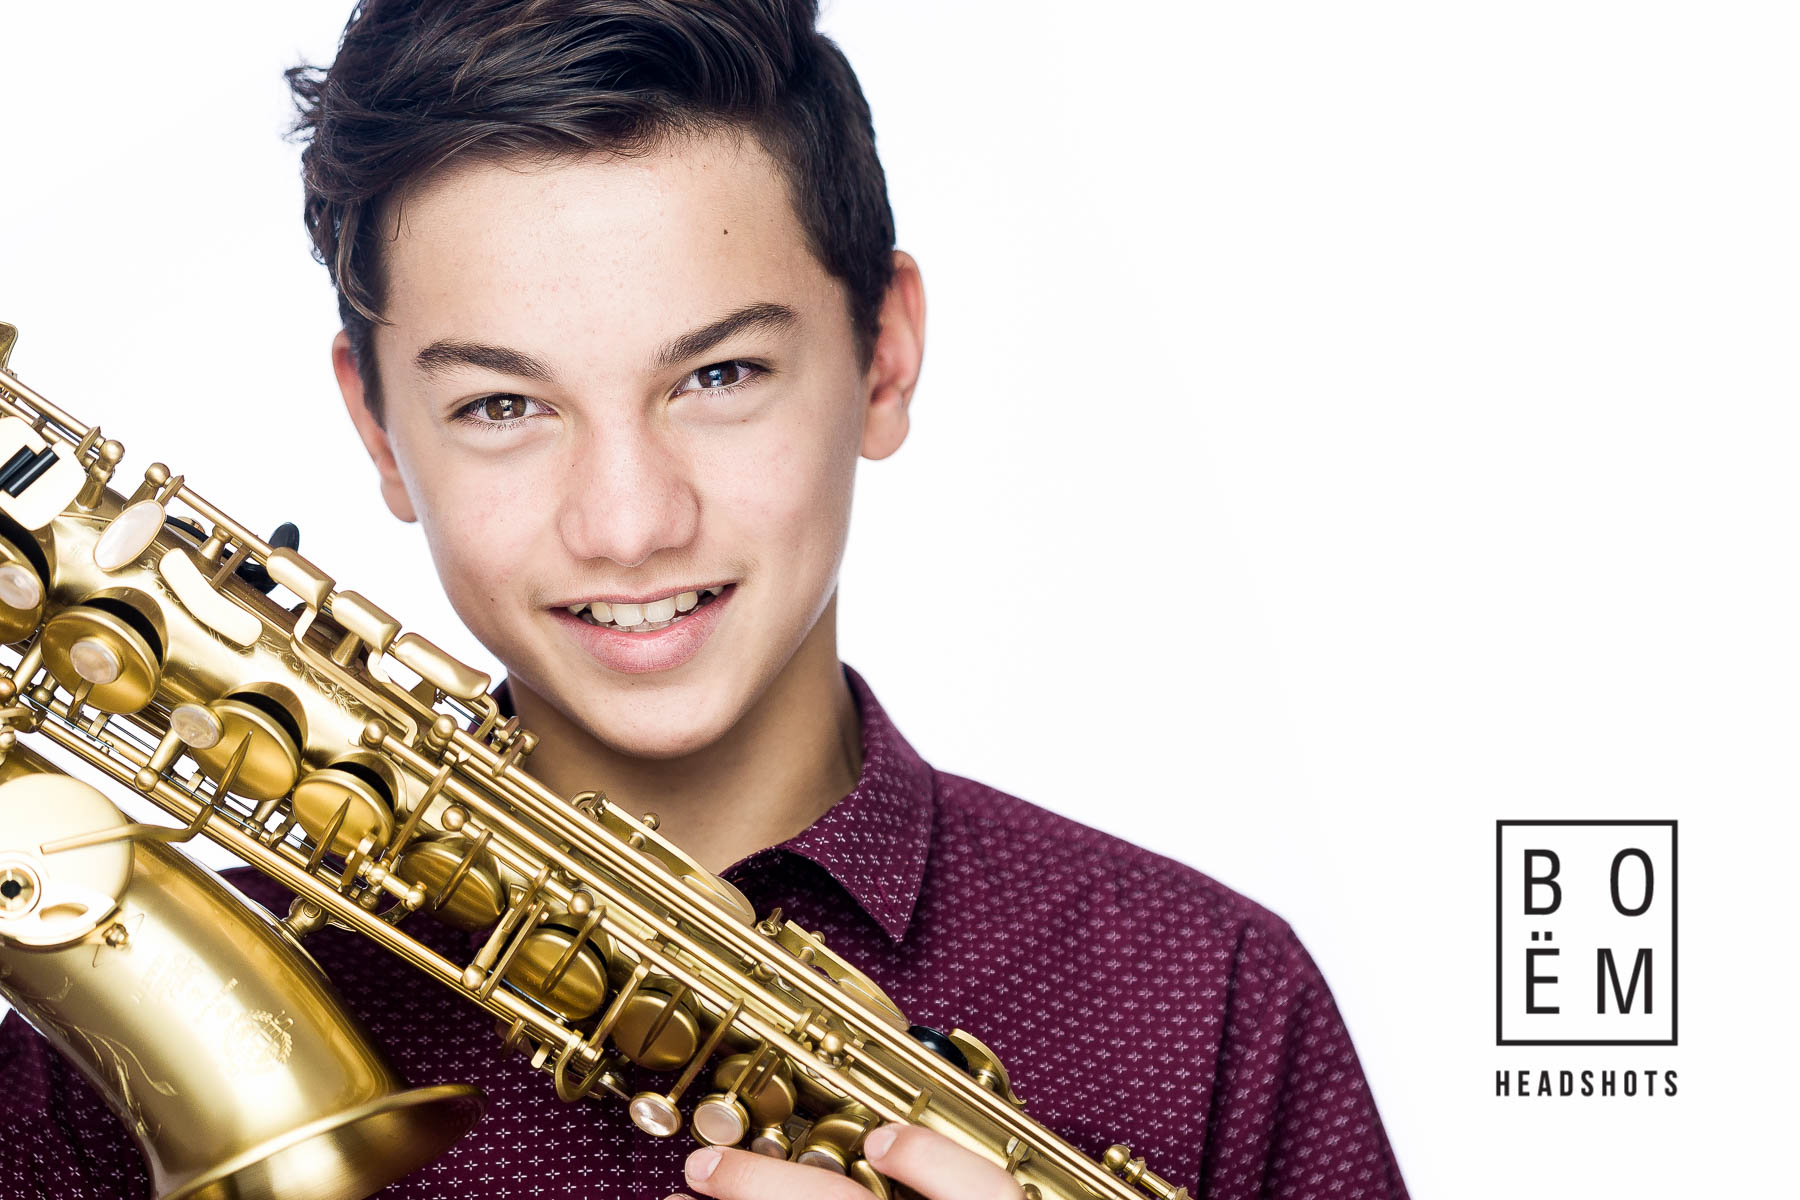 Here's a quick look at my session with this talented young musician and budding actor. We had a blast shooting his new headshots in the studio today.